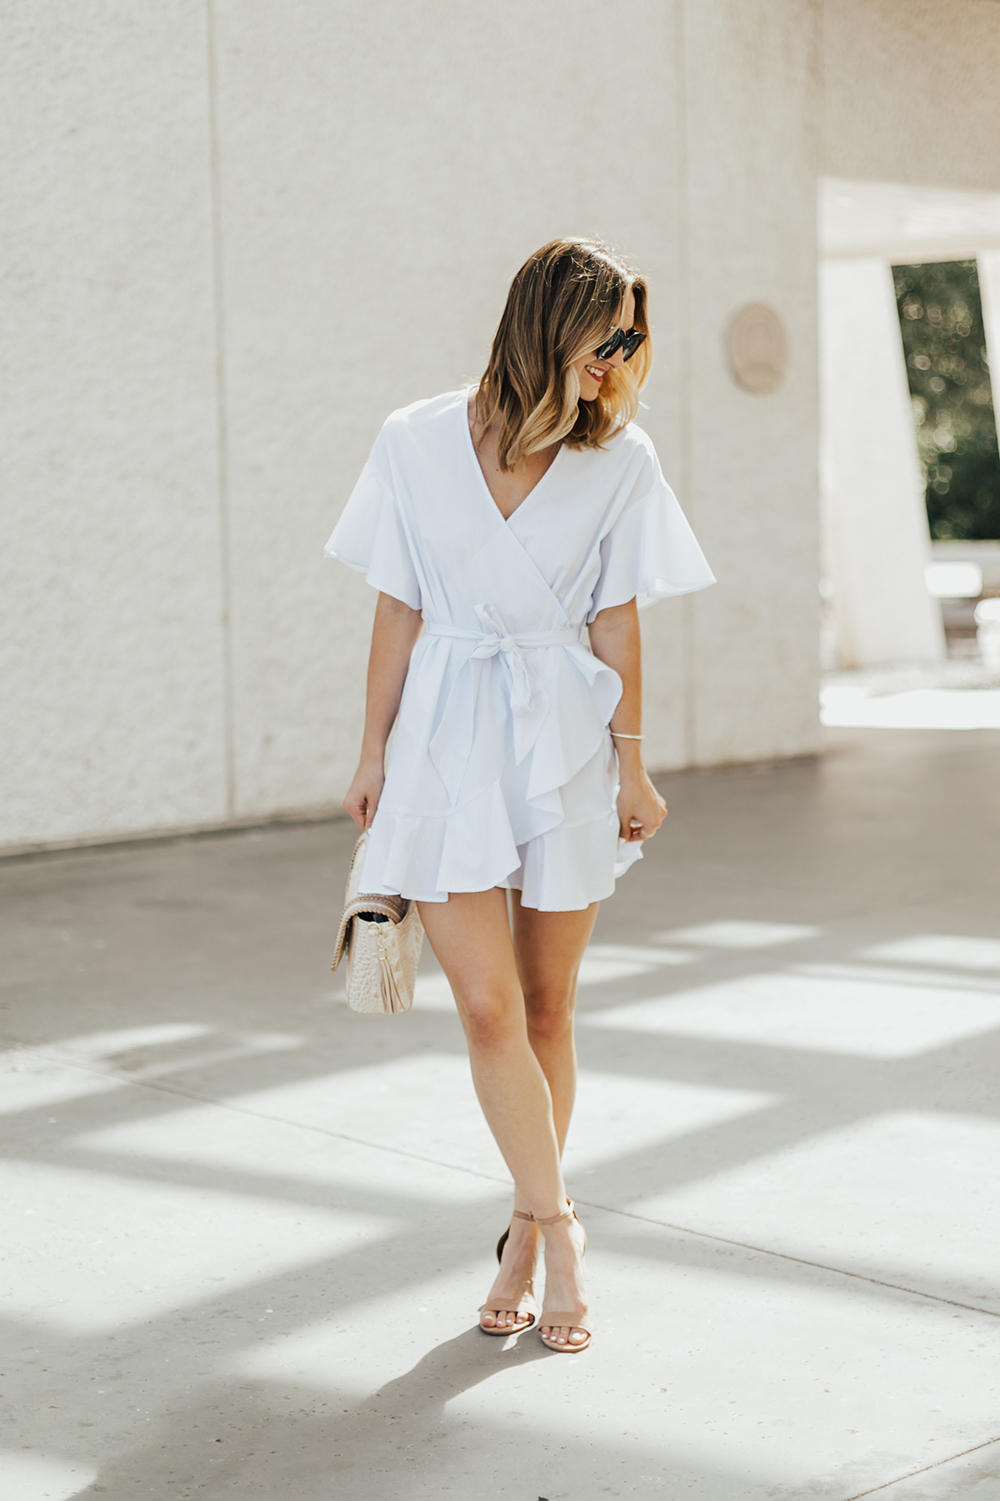 Dainty Ruffle Wrap Dress - Livvyland  Austin Fashion And Style Blogger-6398